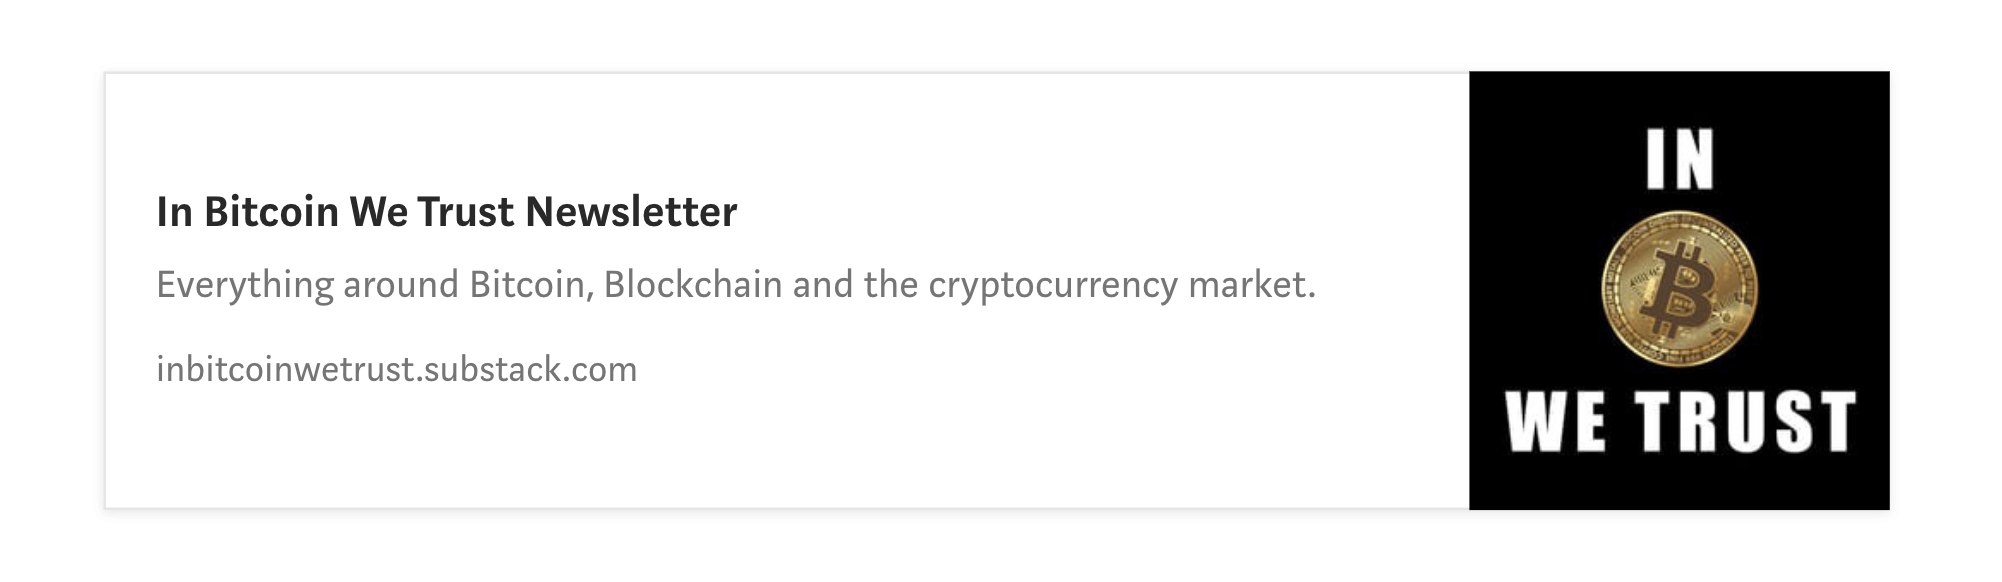 In Bitcoin We Trust Newsletter